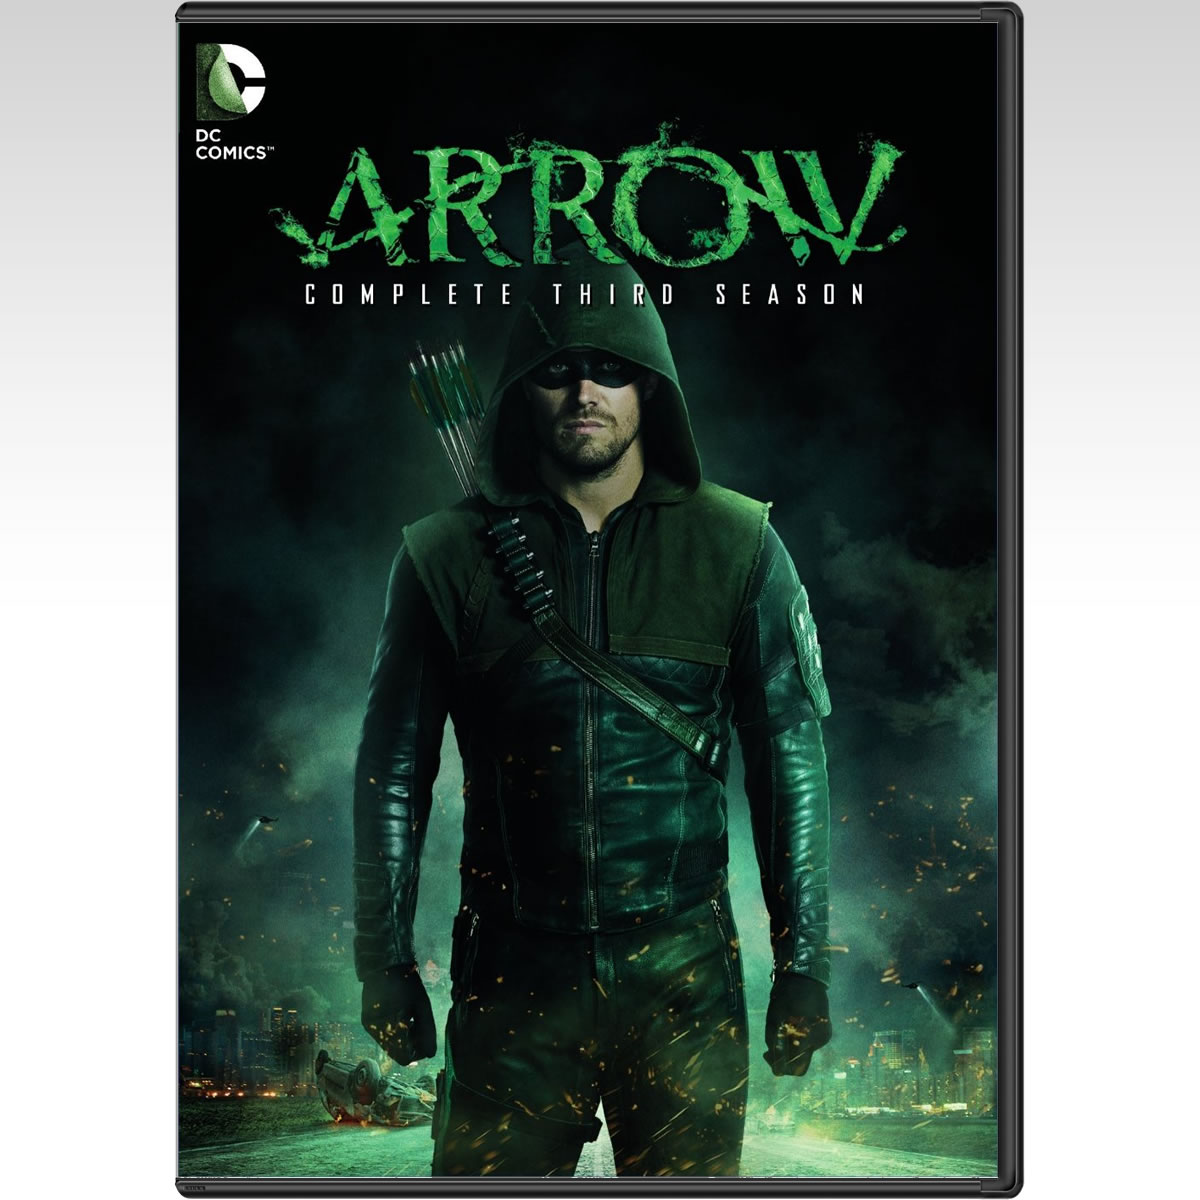 ARROW: THE COMPLETE 3rd SEASON - ARROW: 3η ΠΕΡΙΟΔΟΣ (5 DVDs)